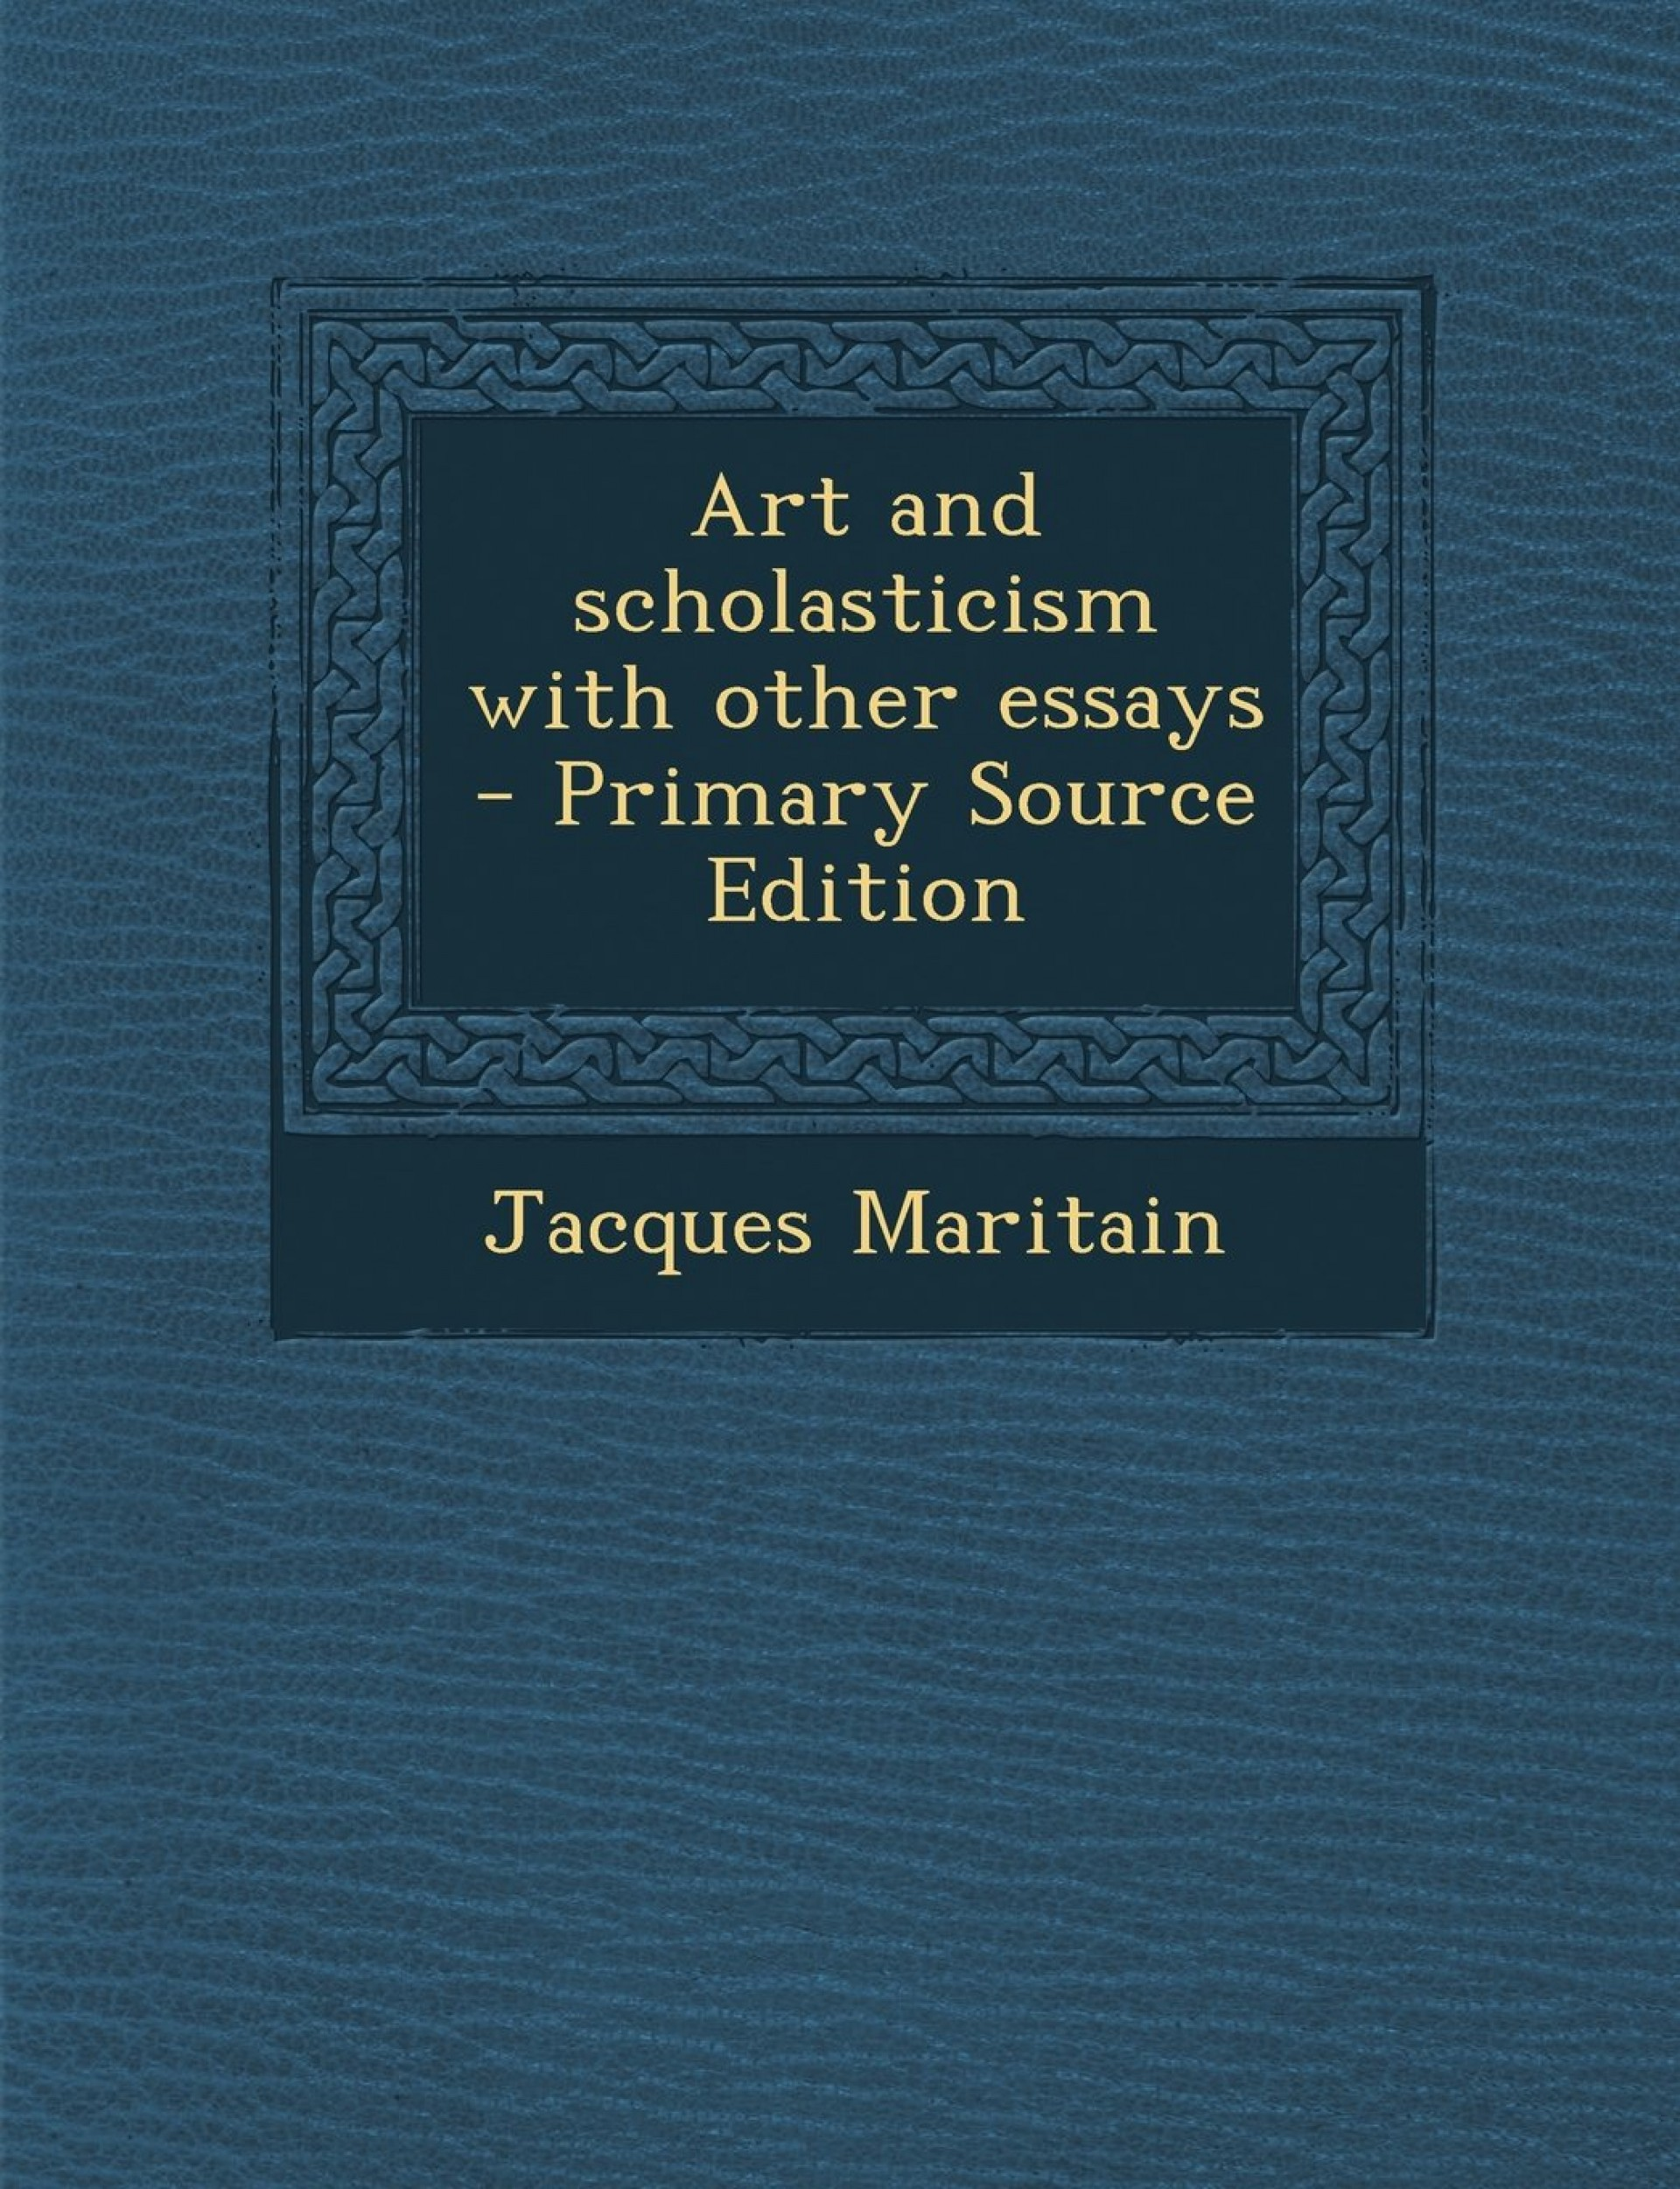 004 Art And Scholasticism With Other Essays Essay Example Impressive 1920